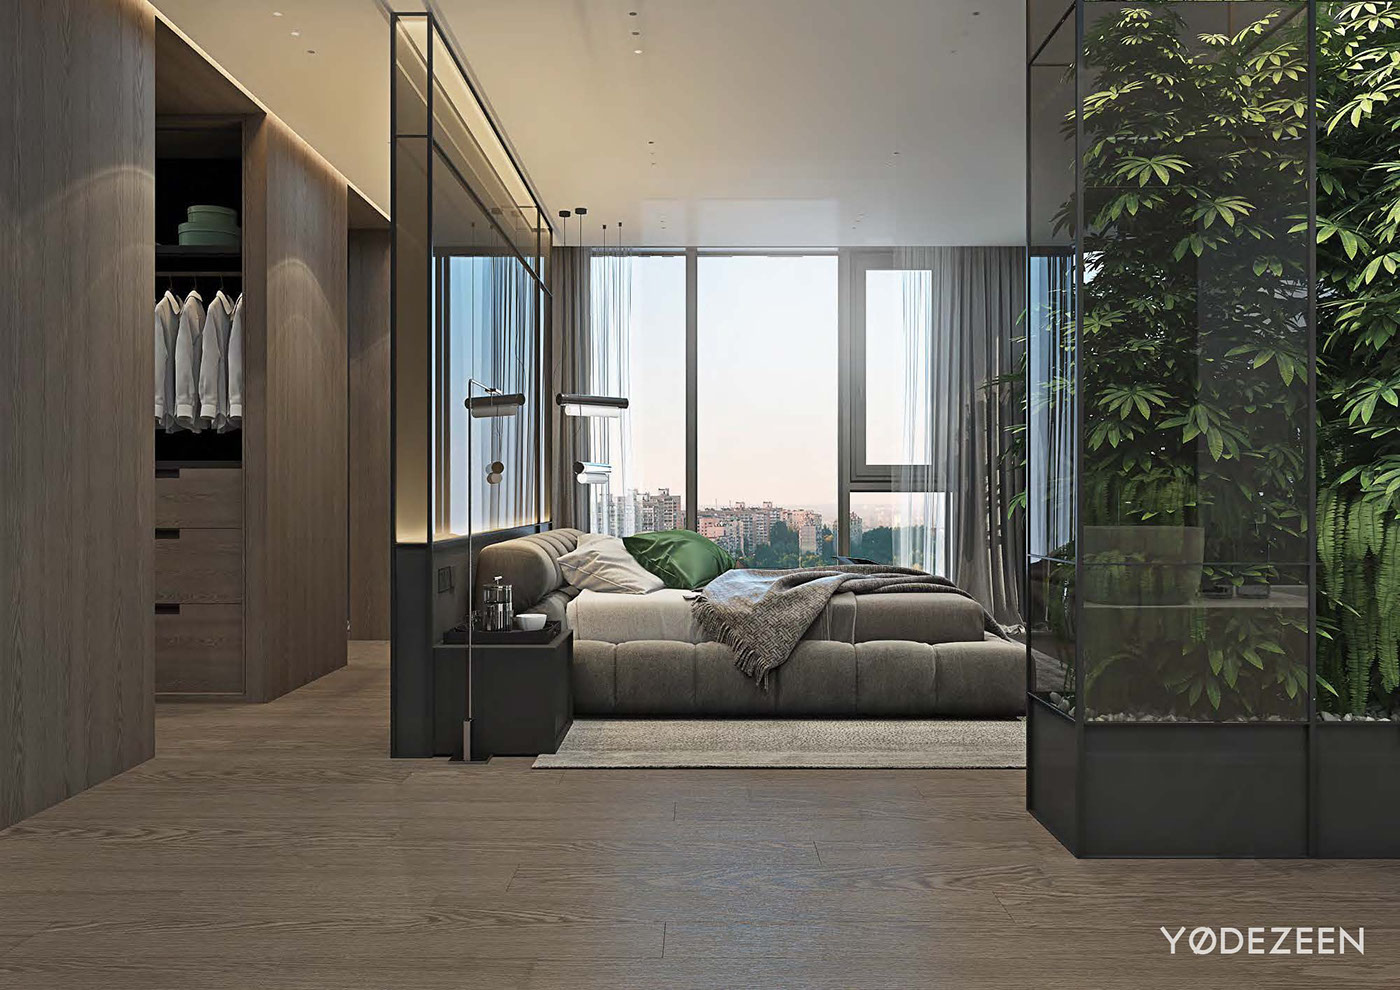 Luxurious Apartment Redefines The Term 'Urban Jungle' images 21